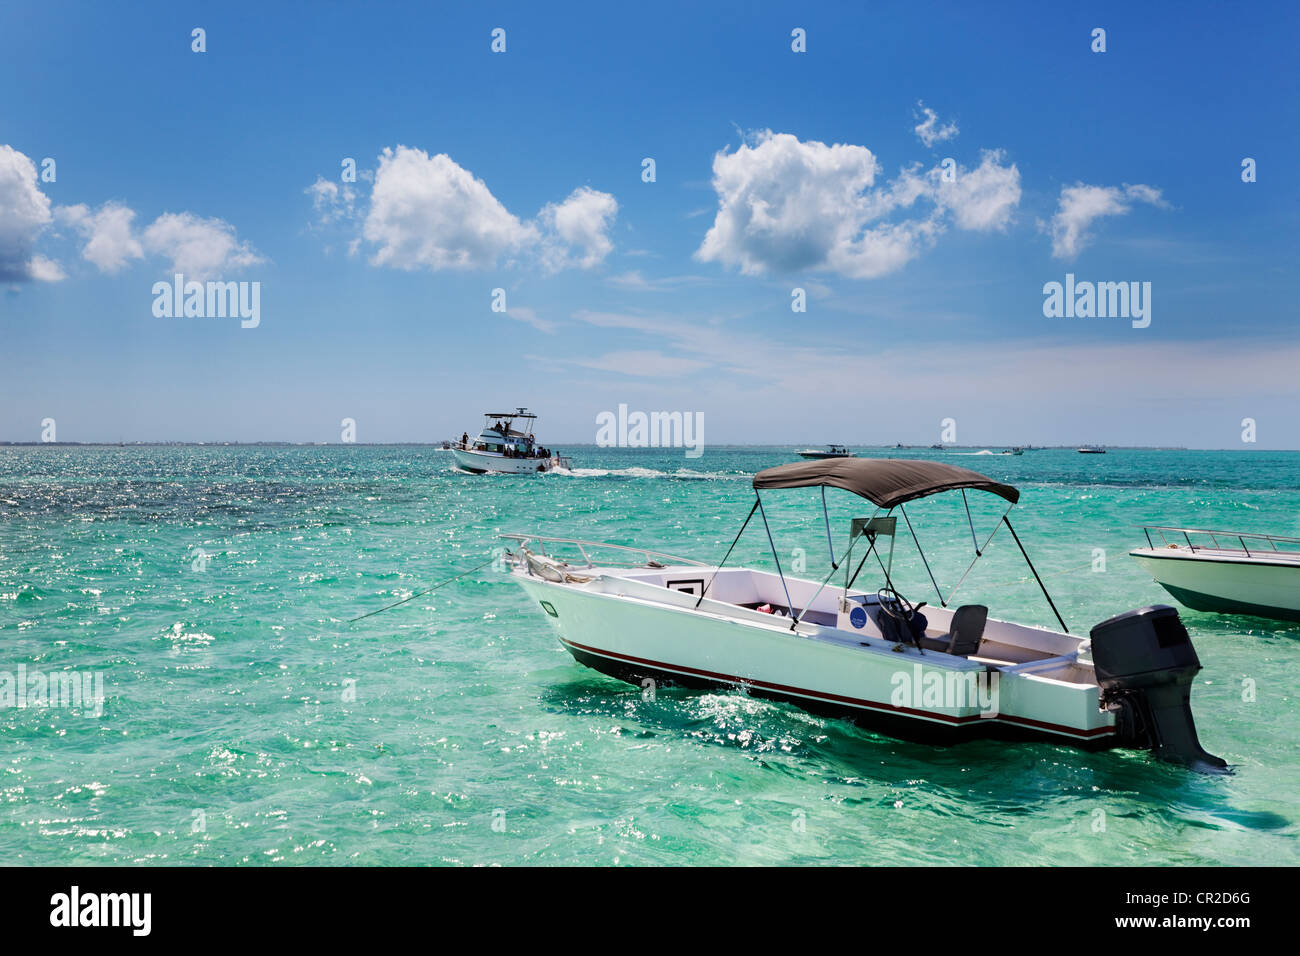 Boats anchored by the sandbar at Stringray City, Grand Cayman - Stock Image